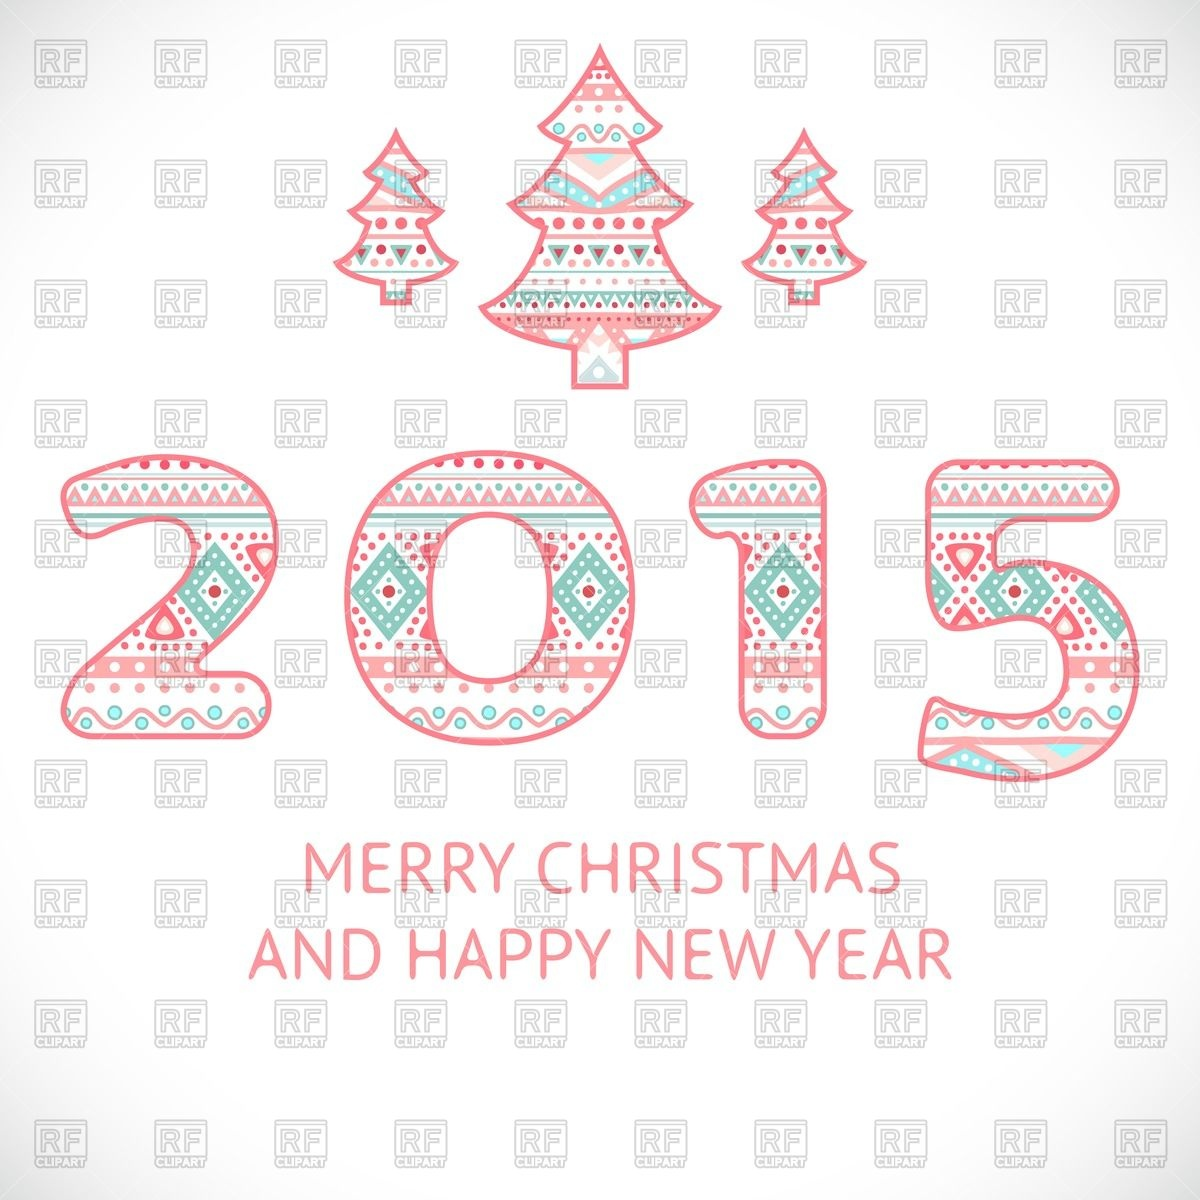 Happy New Year Greeting Card   Cute Numbers 2015 And Christmas Tree In